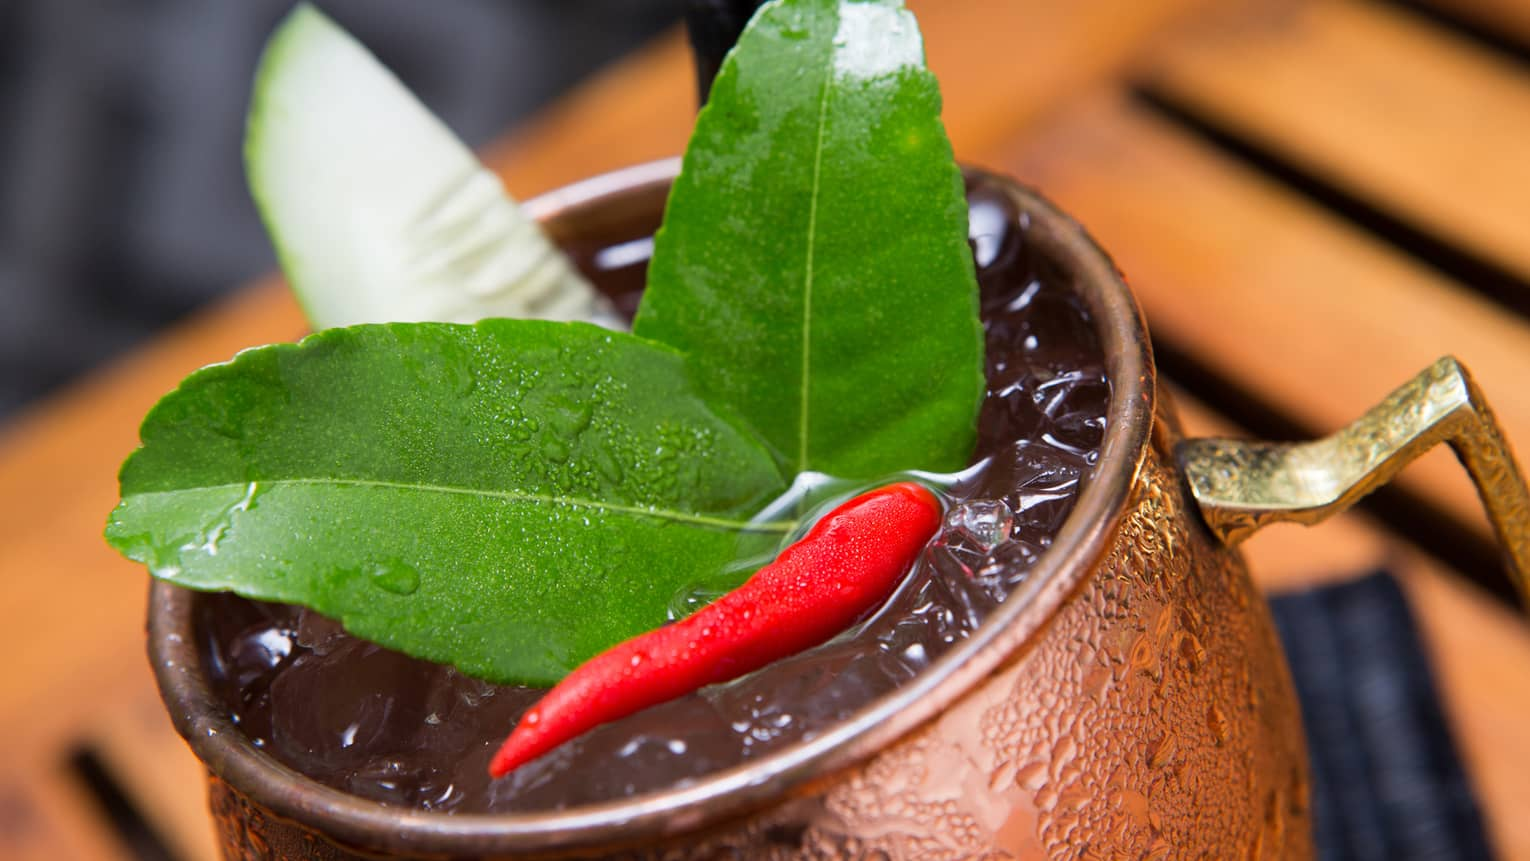 Close-up of green lime leaves, small red hot pepper on cocktail in brass cup